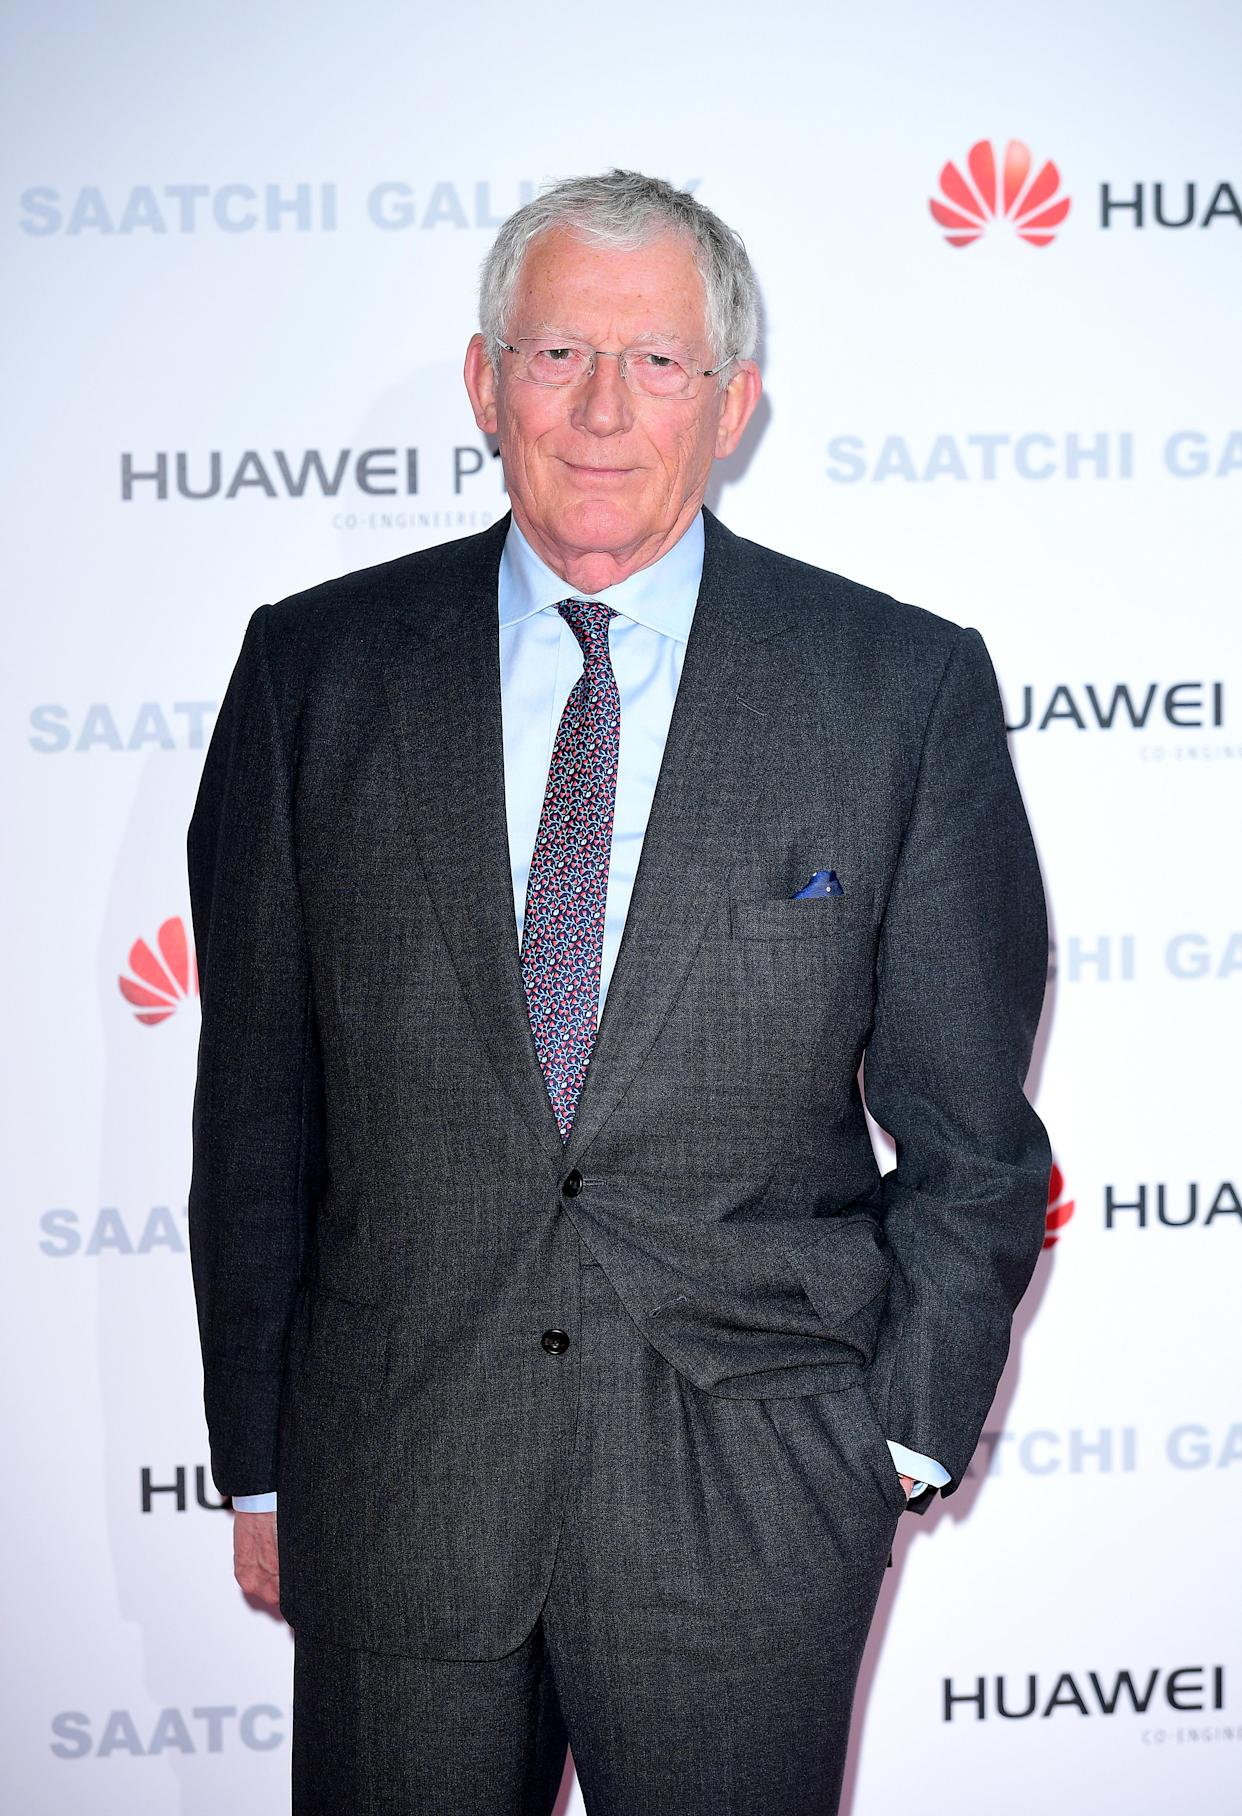 Nick Hewer attending the From Selfie to Self-Expression exhibition at the Saatchi Gallery in London.